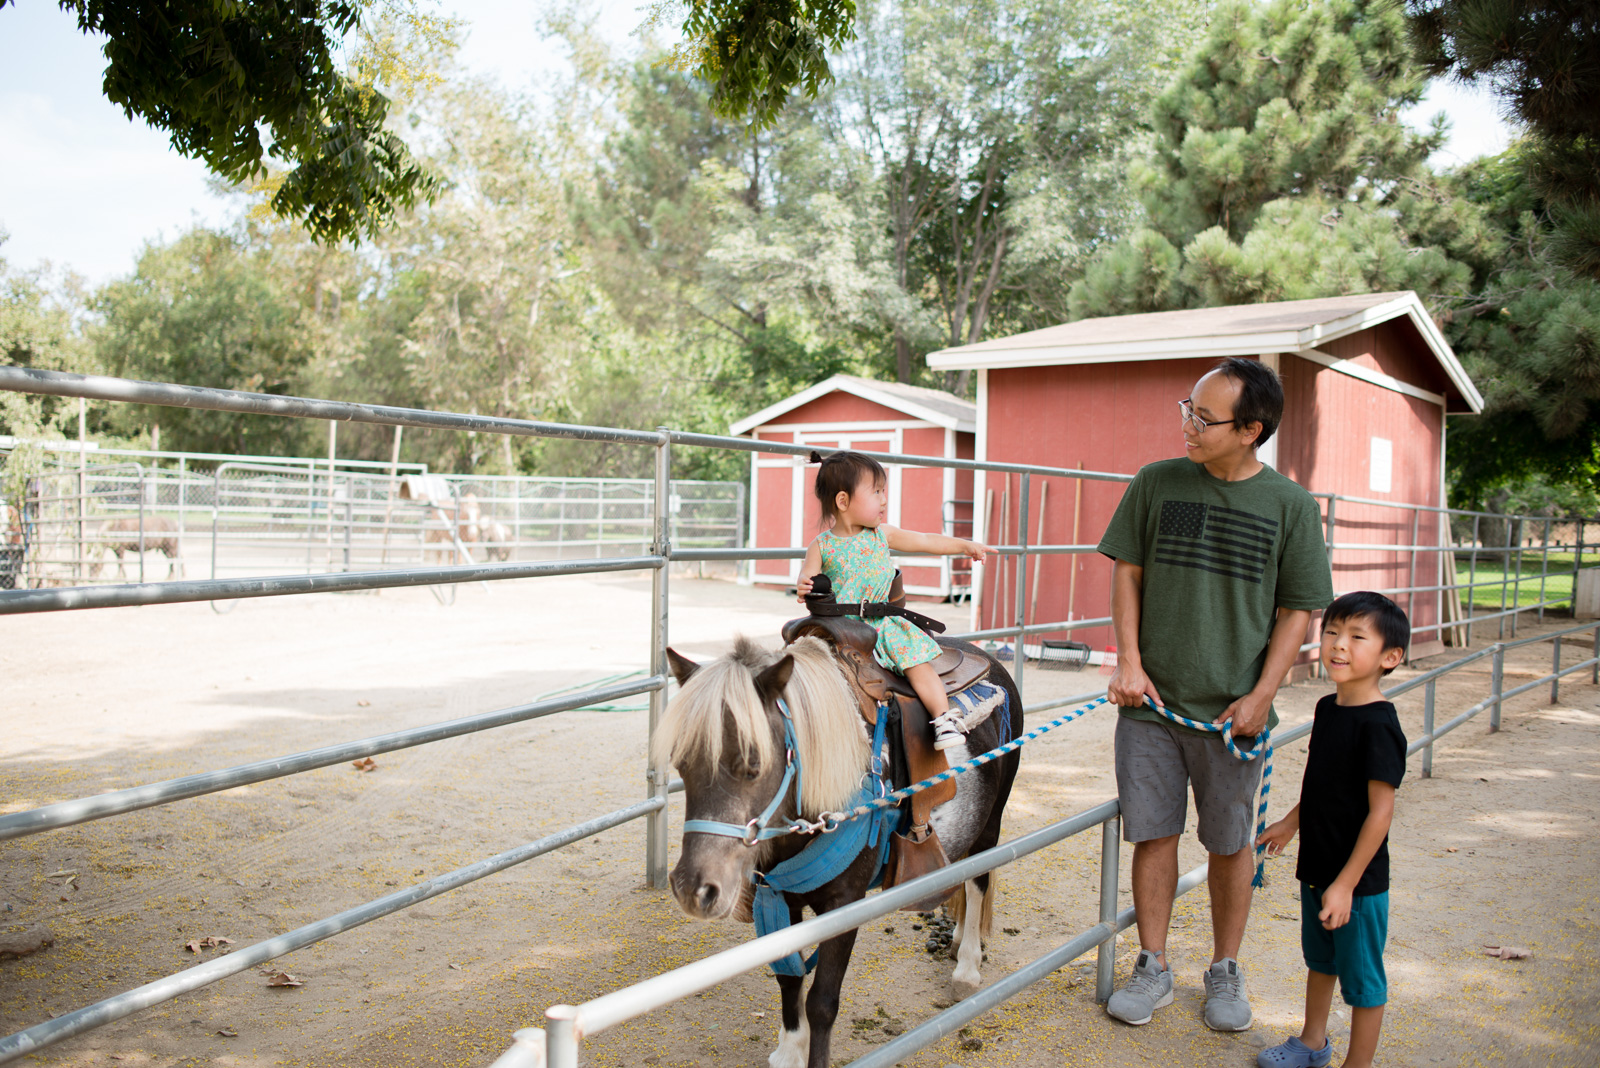 Tiffany Luong photographs children and husband riding ponies for Westways